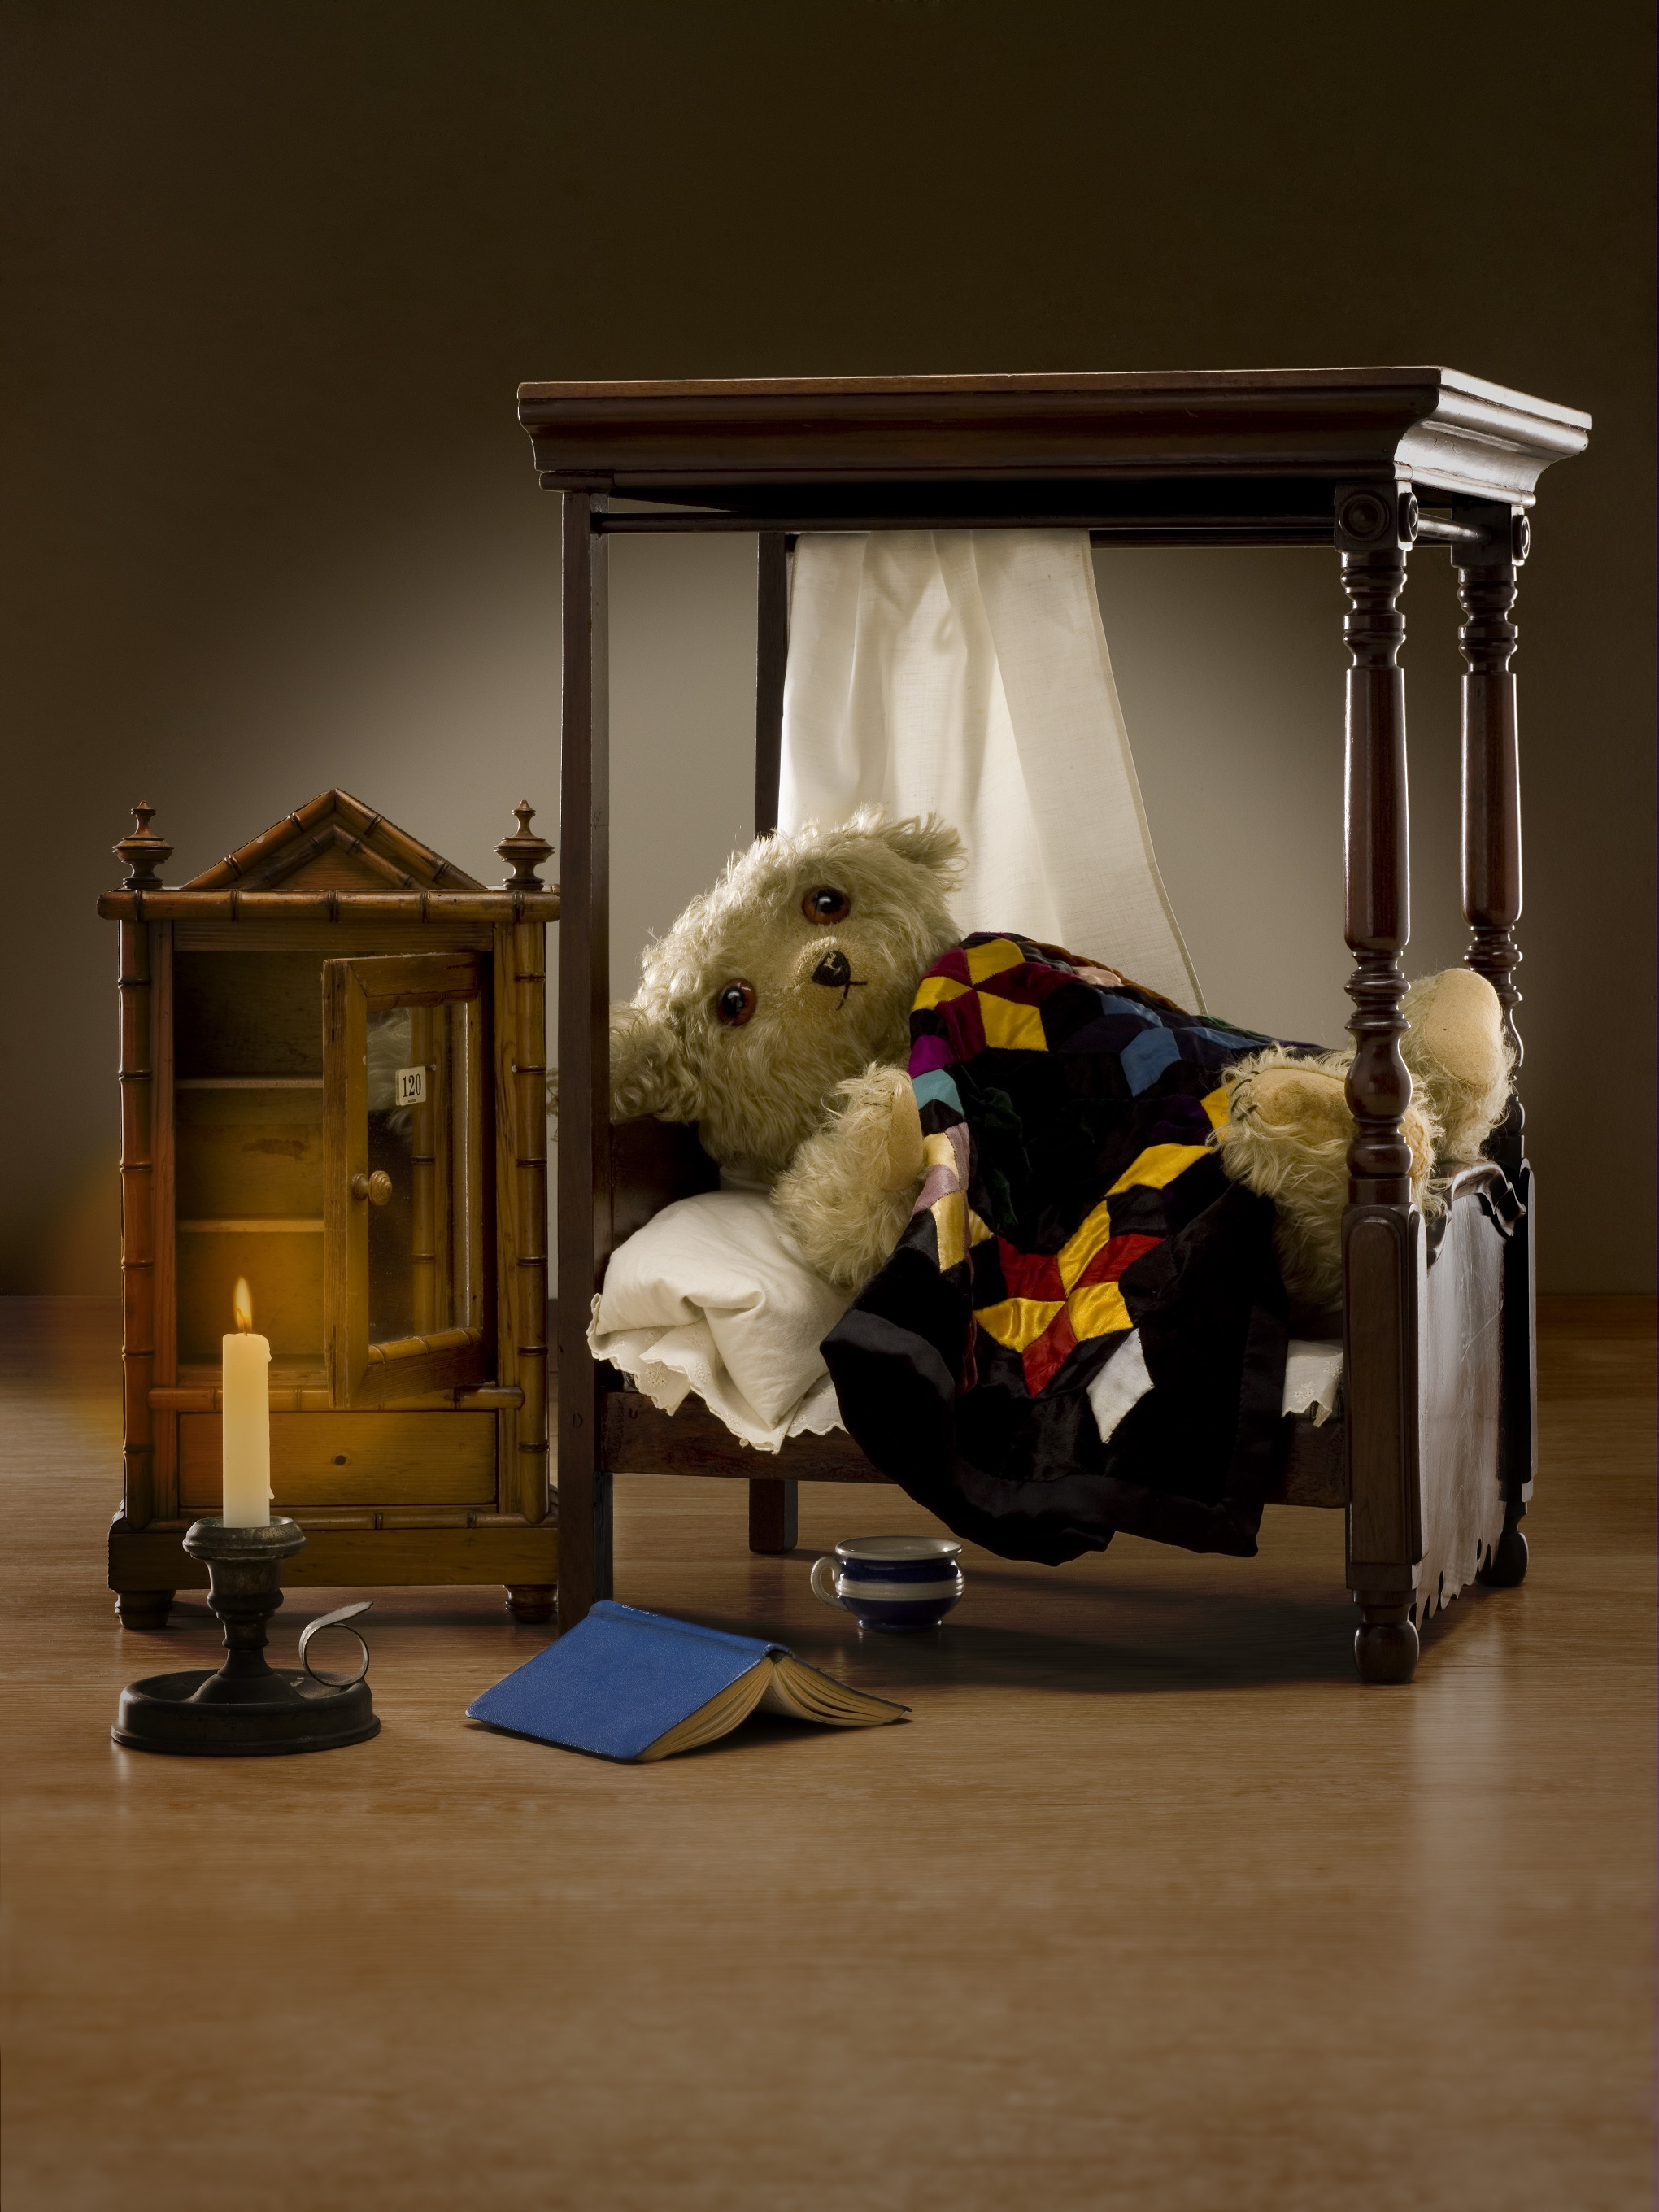 A bedroom scene with a doll's four-poster bed with a teddy bear